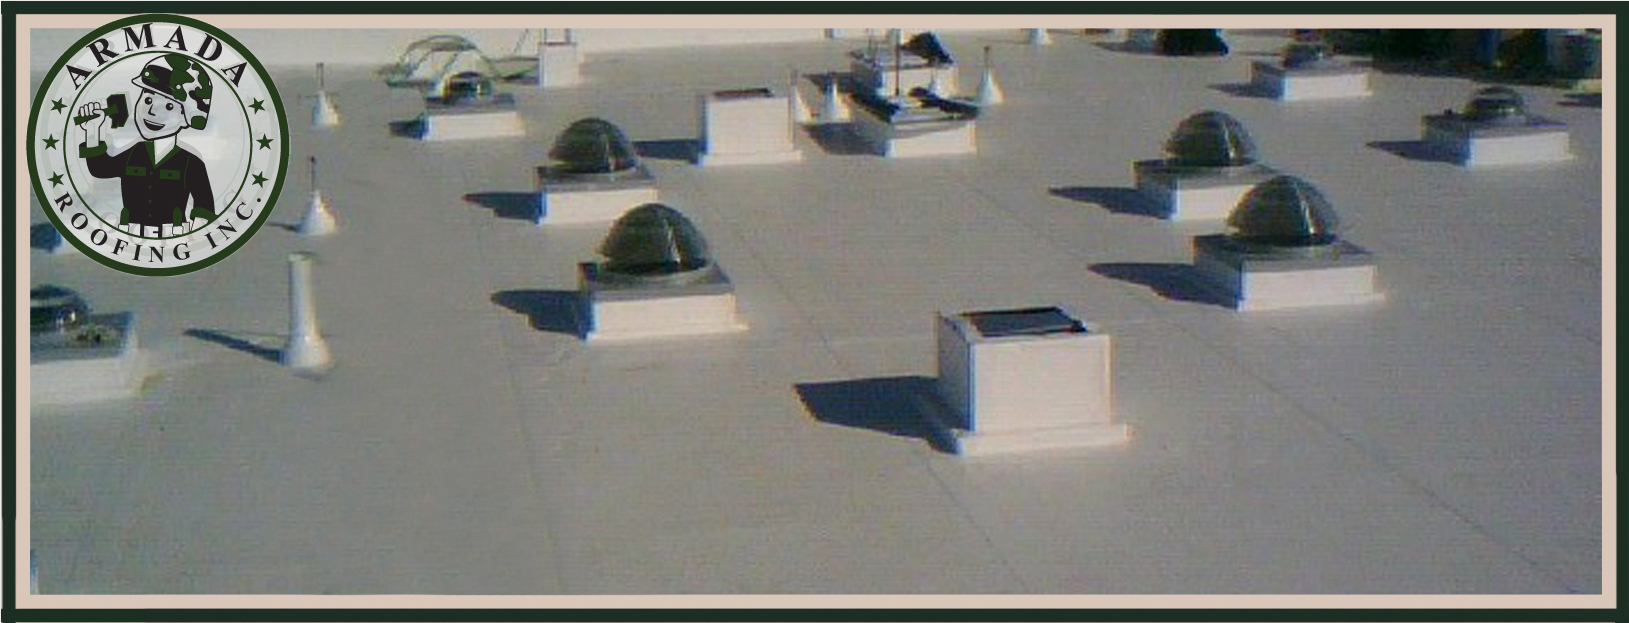 Single Ply Roofing for Flat Roofs in Riverside California commercial building and industrial